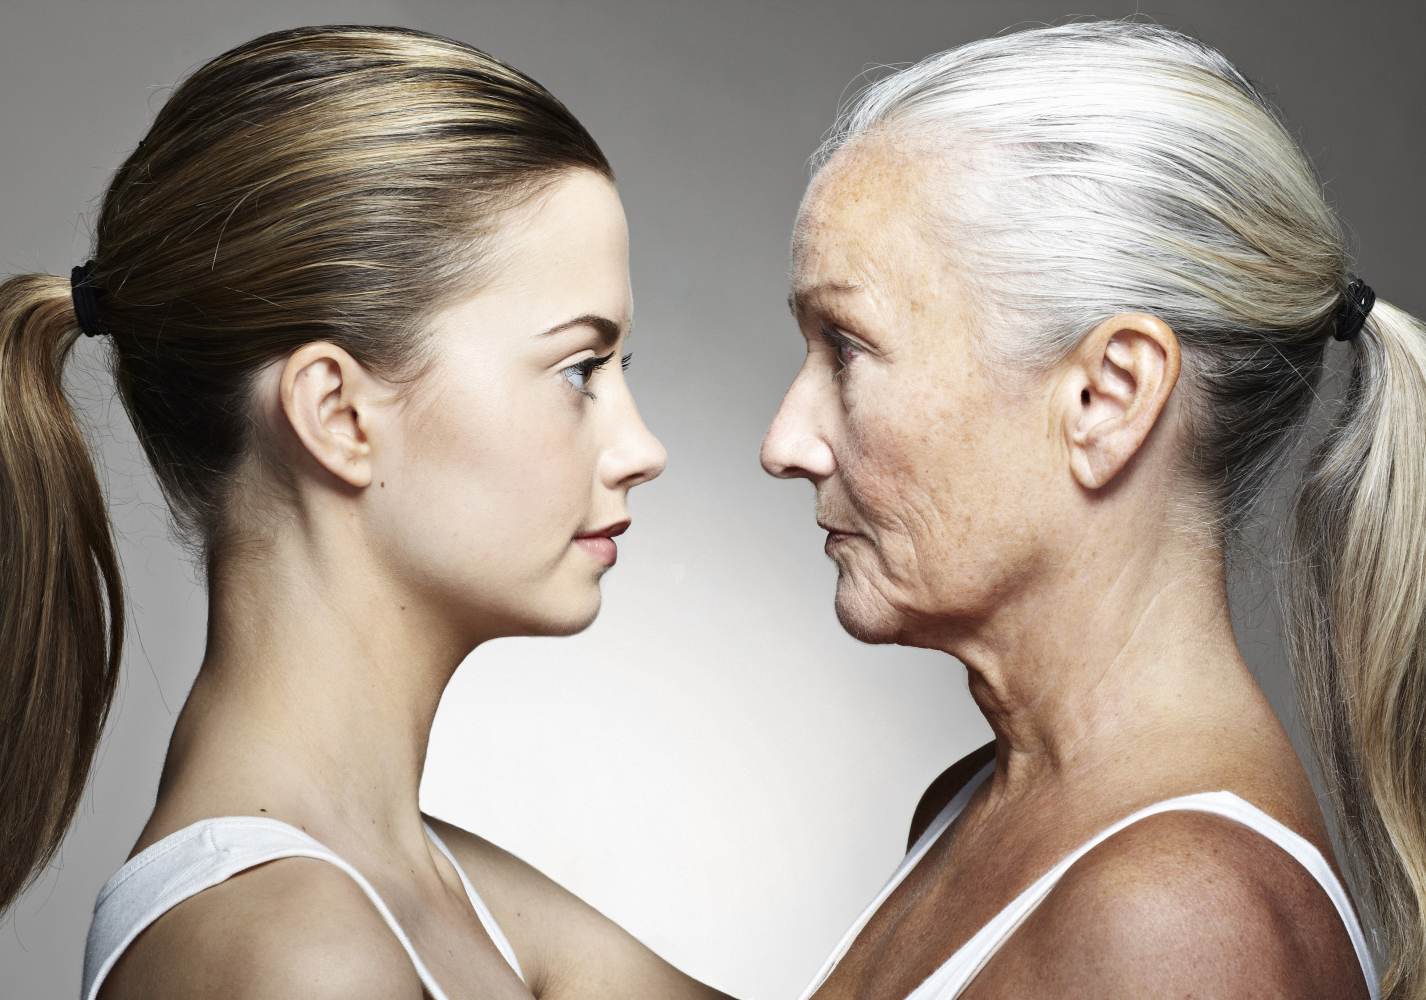 reverse aging now with glutathione